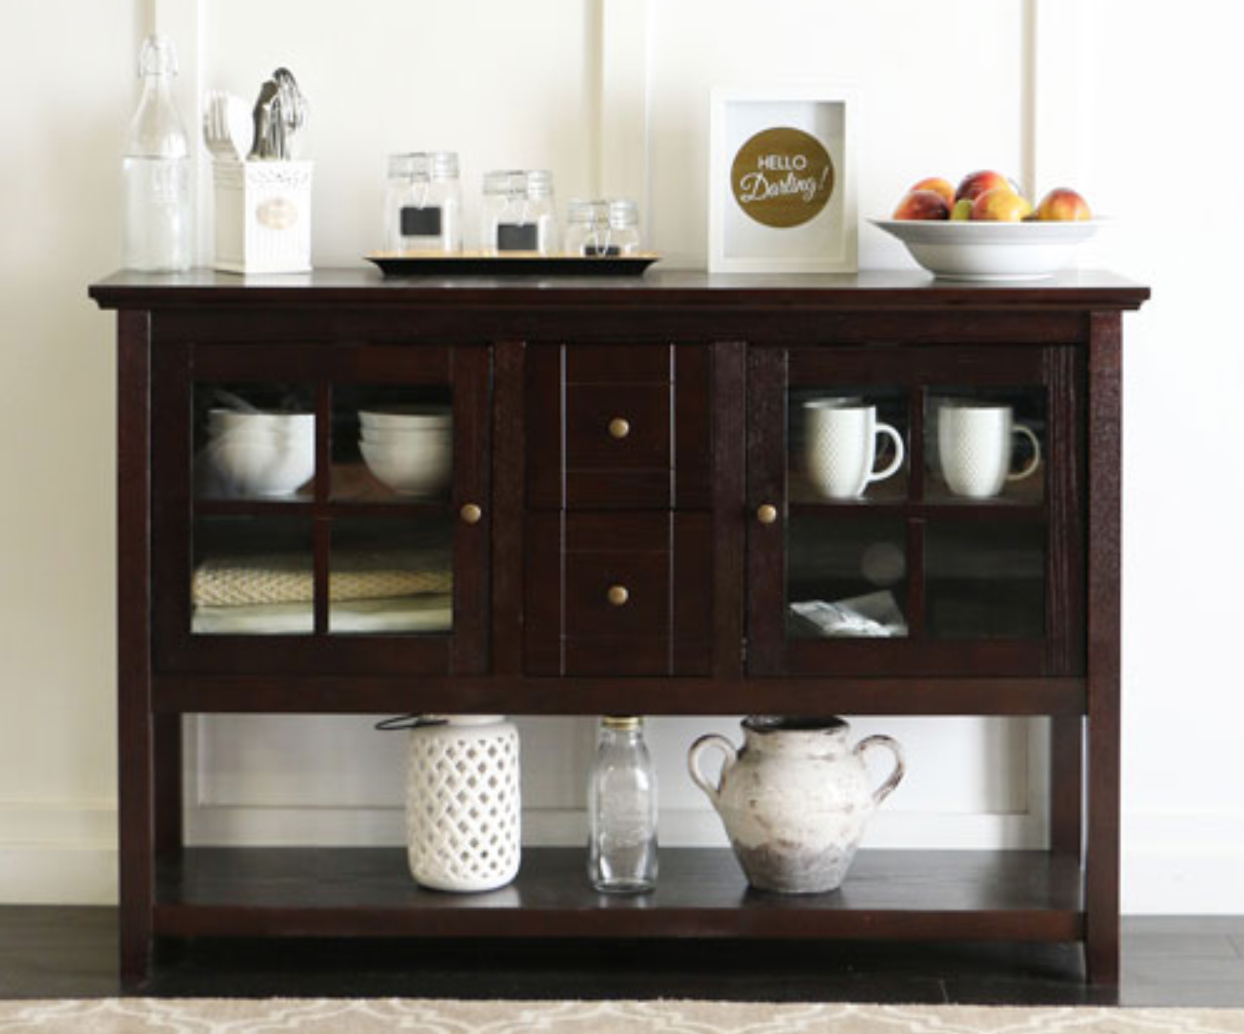 image of a kitchen buffet holding dishes and decor